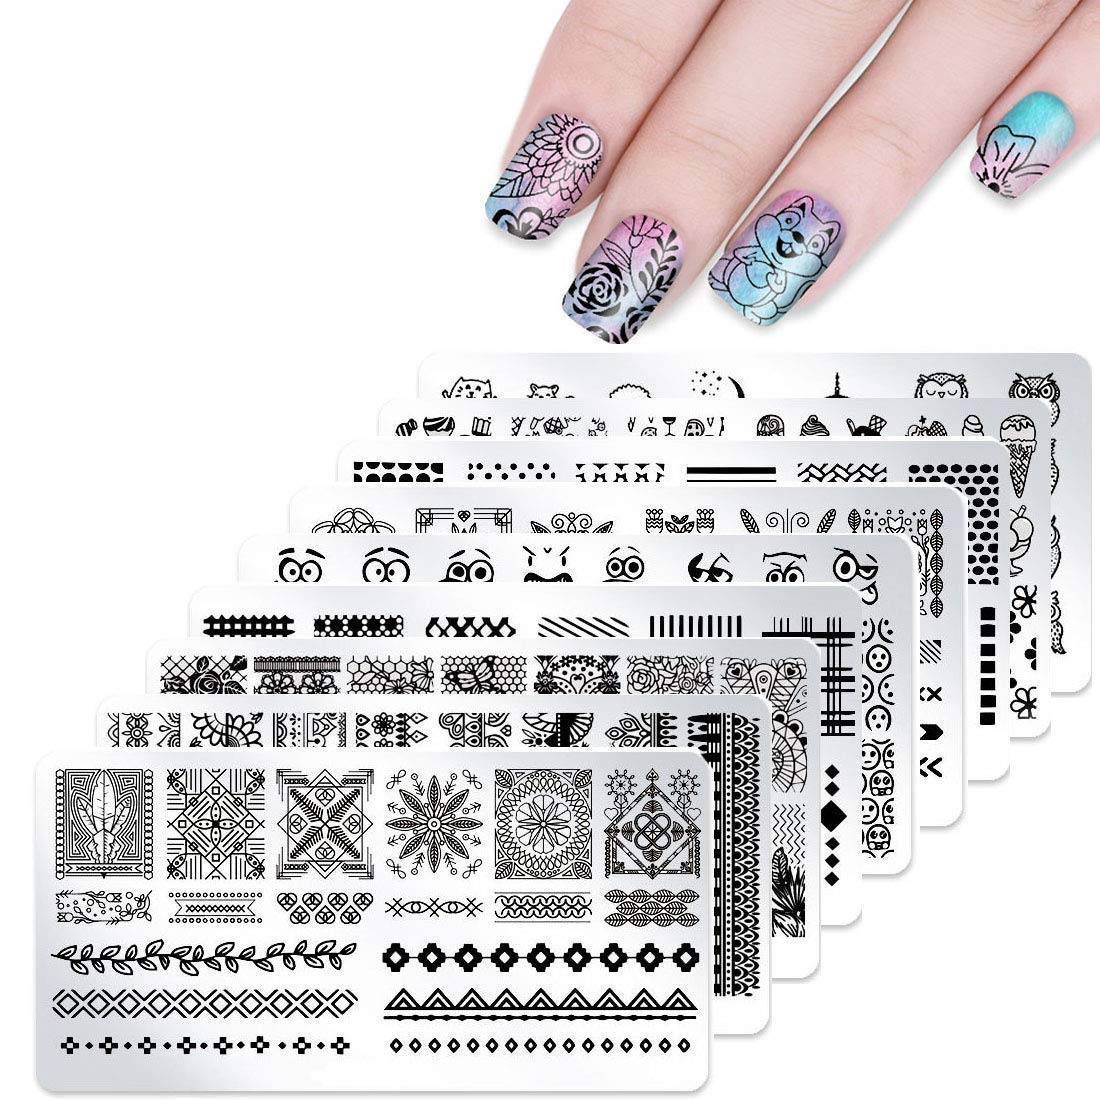 DAODER 10pcs Nail Stamping Kit Stamping Plates with Stamper and Scraper Novel Vivid Nail Stamp Kit Cute Animal Lace Flower Geometric Stripe Pattern Nail Plates for Nails Art Design (10 Plates) by DAODER